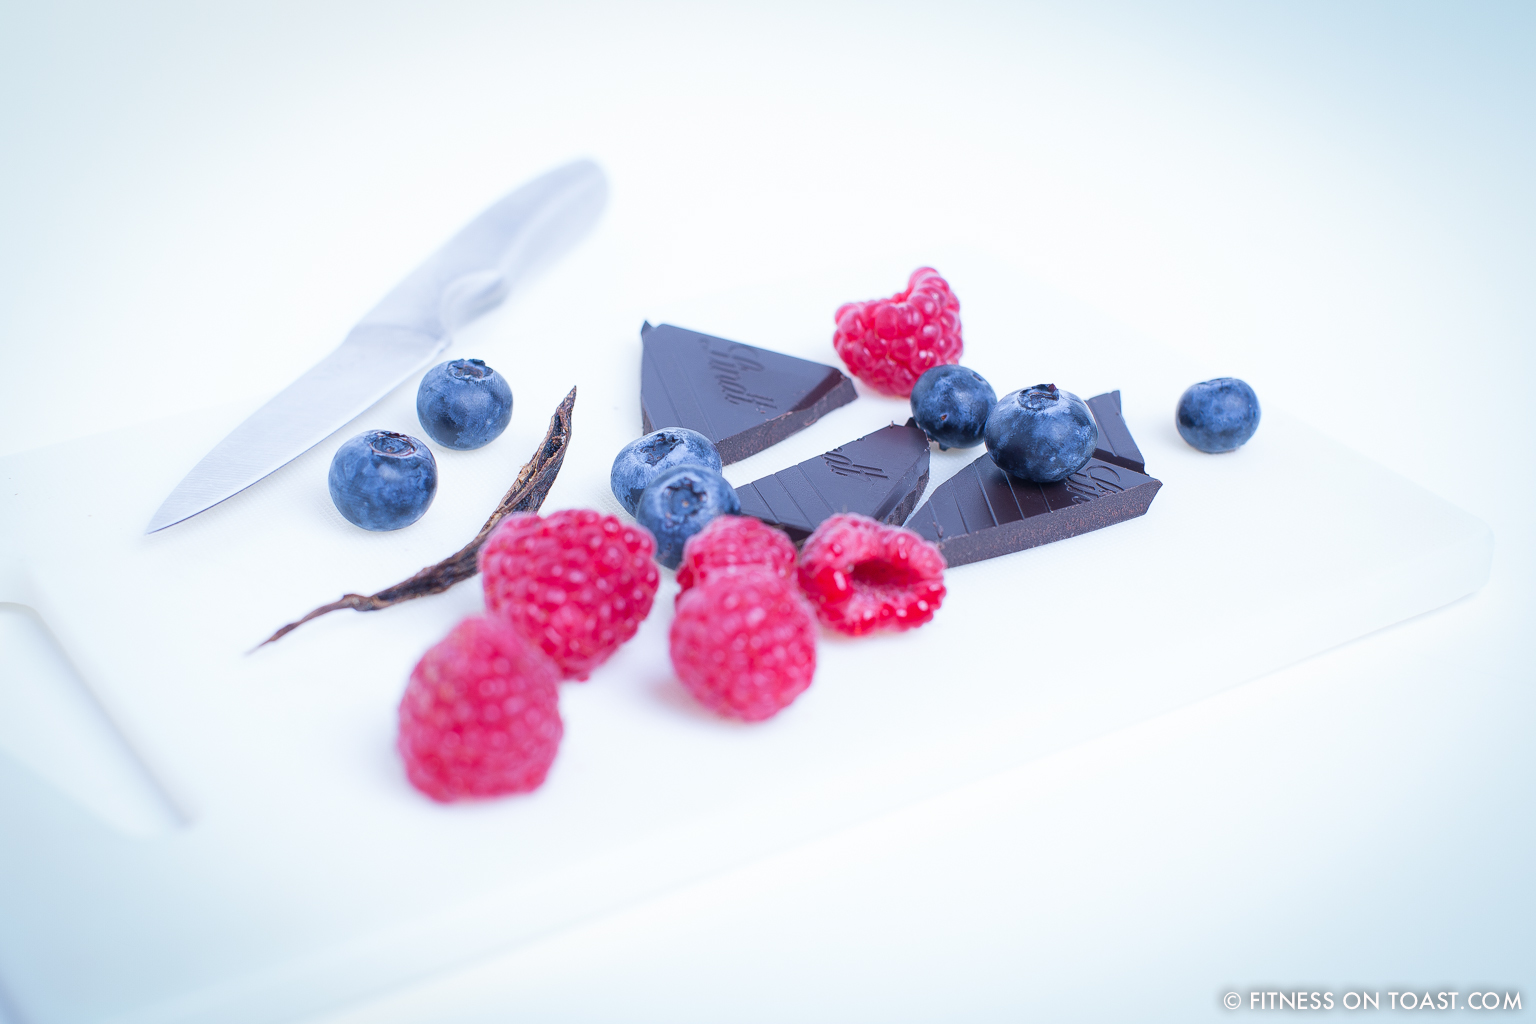 Fitness On Toast Faya Girl Blog Training Exercise Workout Nutrition Healthy Health Recipe Diet Cheat Treat Chocolate Banana Coconut Dessert Bites Nutritious Tasty Low Calorie-5